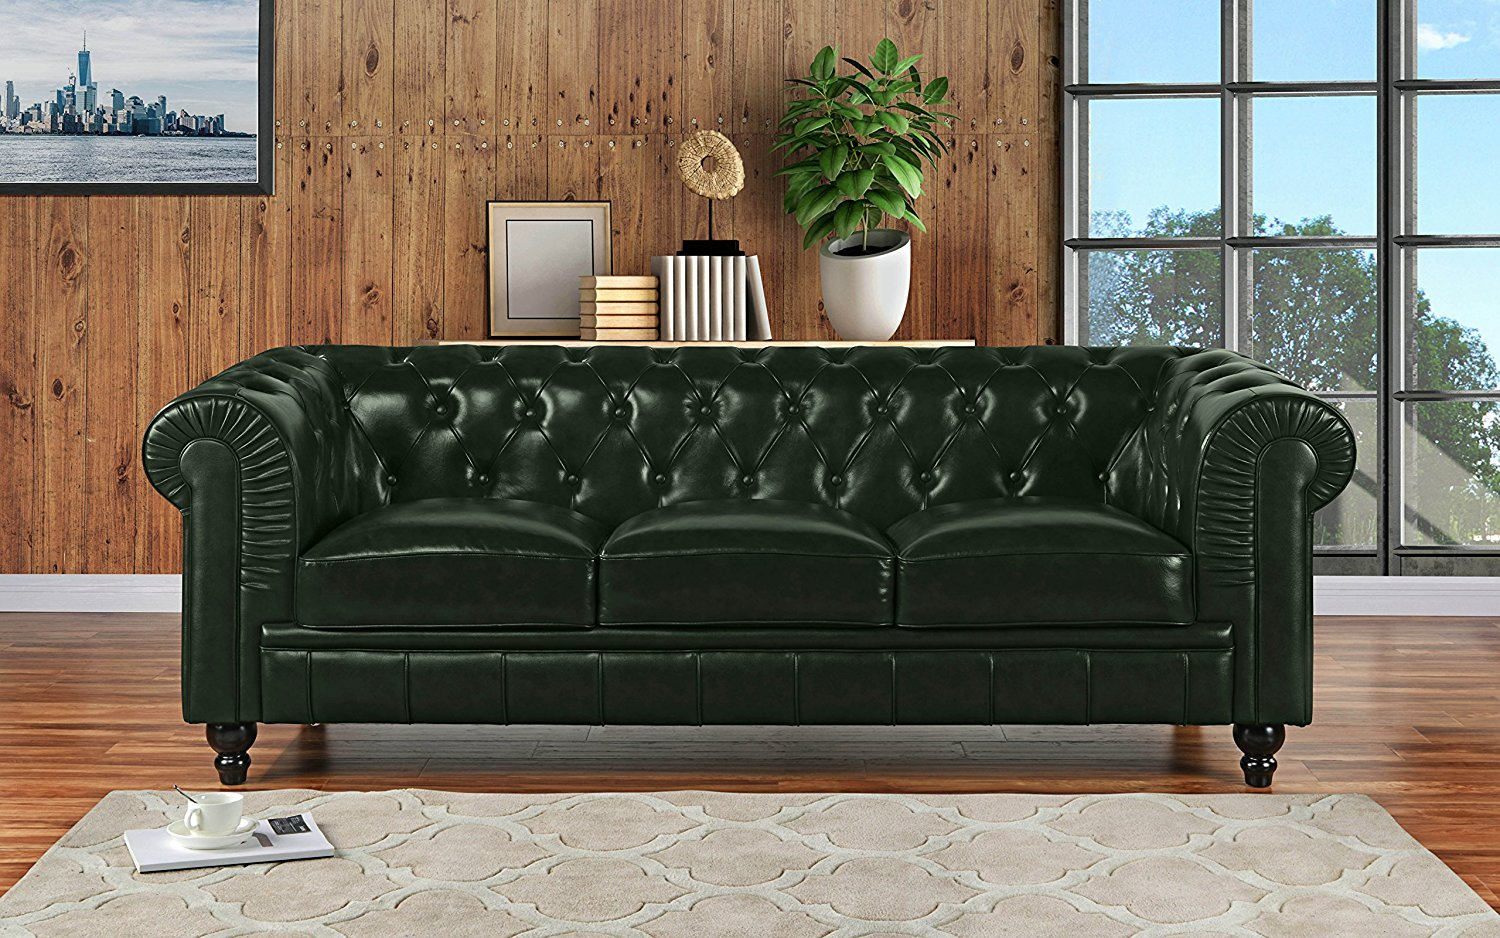 Chesterfield Suites Cheap Inflatable Chesterfield Sofa Find Inflatable Chesterfield